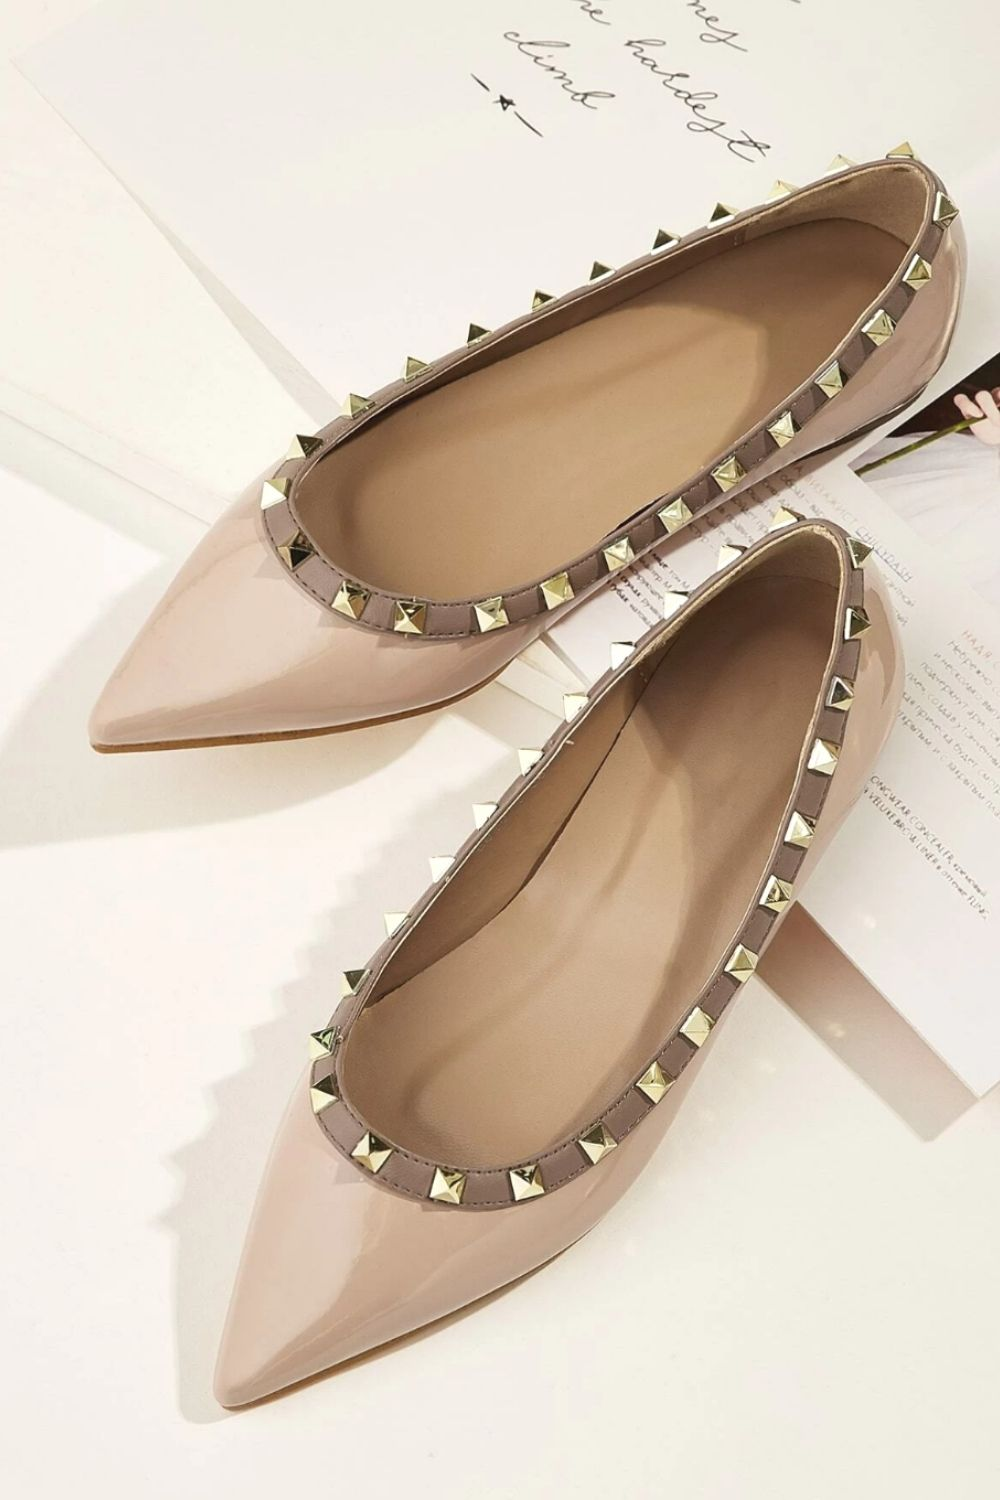 Valentino Rockstud Shoe Dupes | Linn Style by Jessica Linn